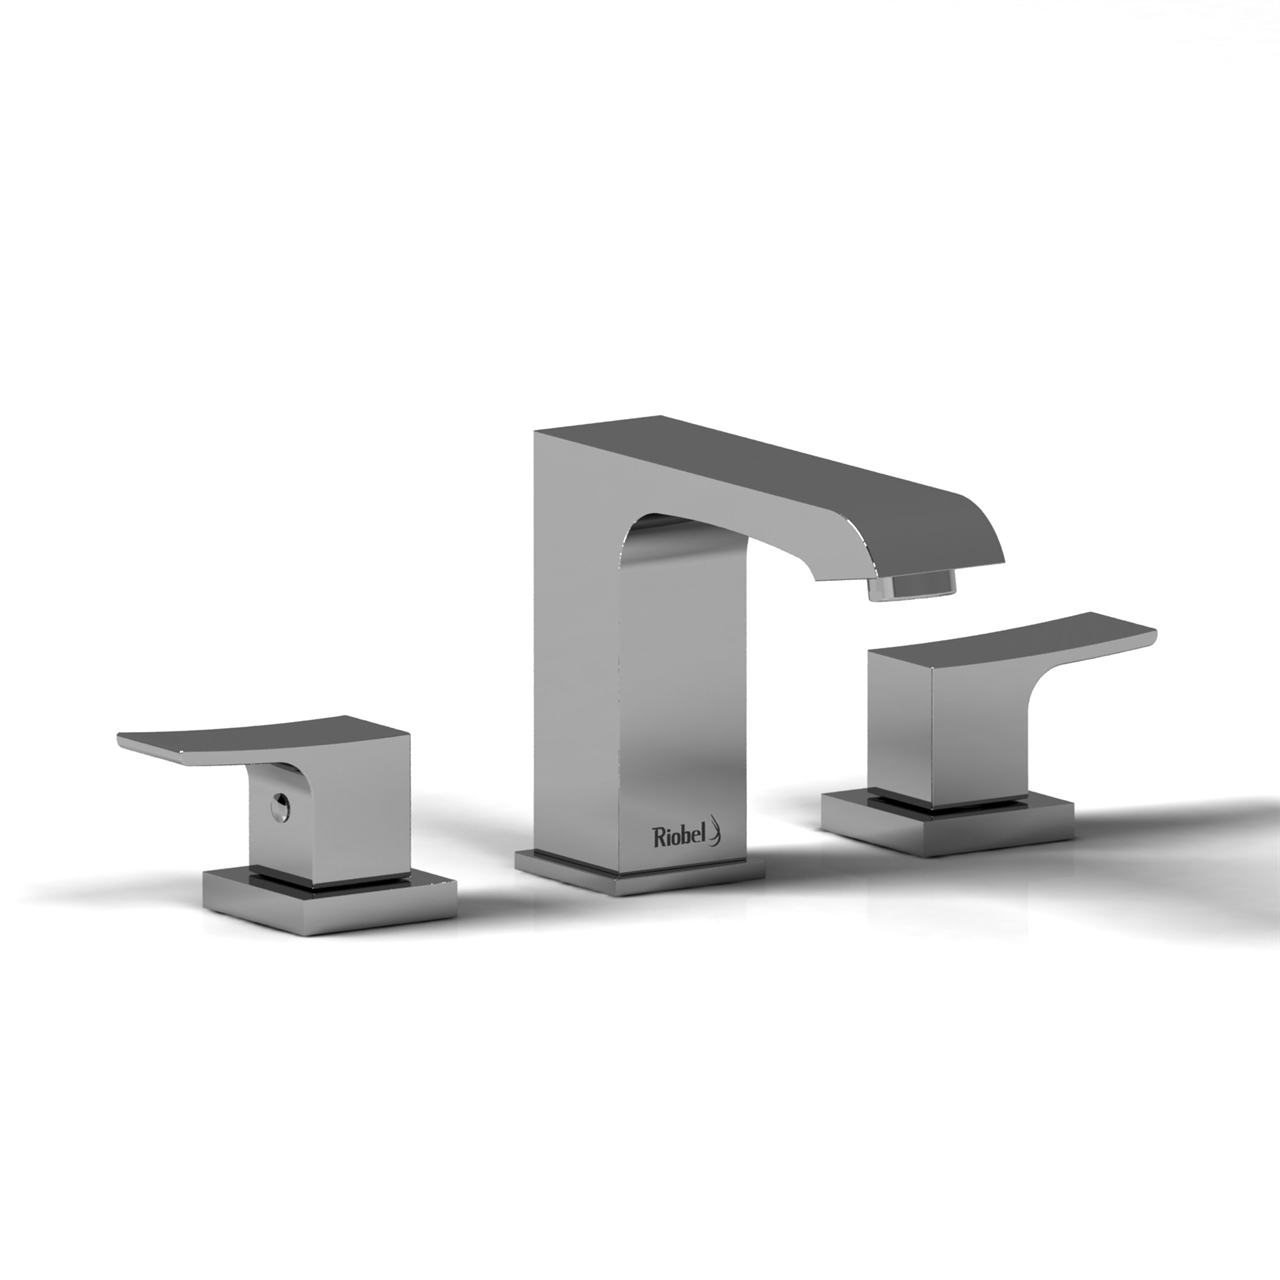 world lavatory faucet inlets faucets camping valterra